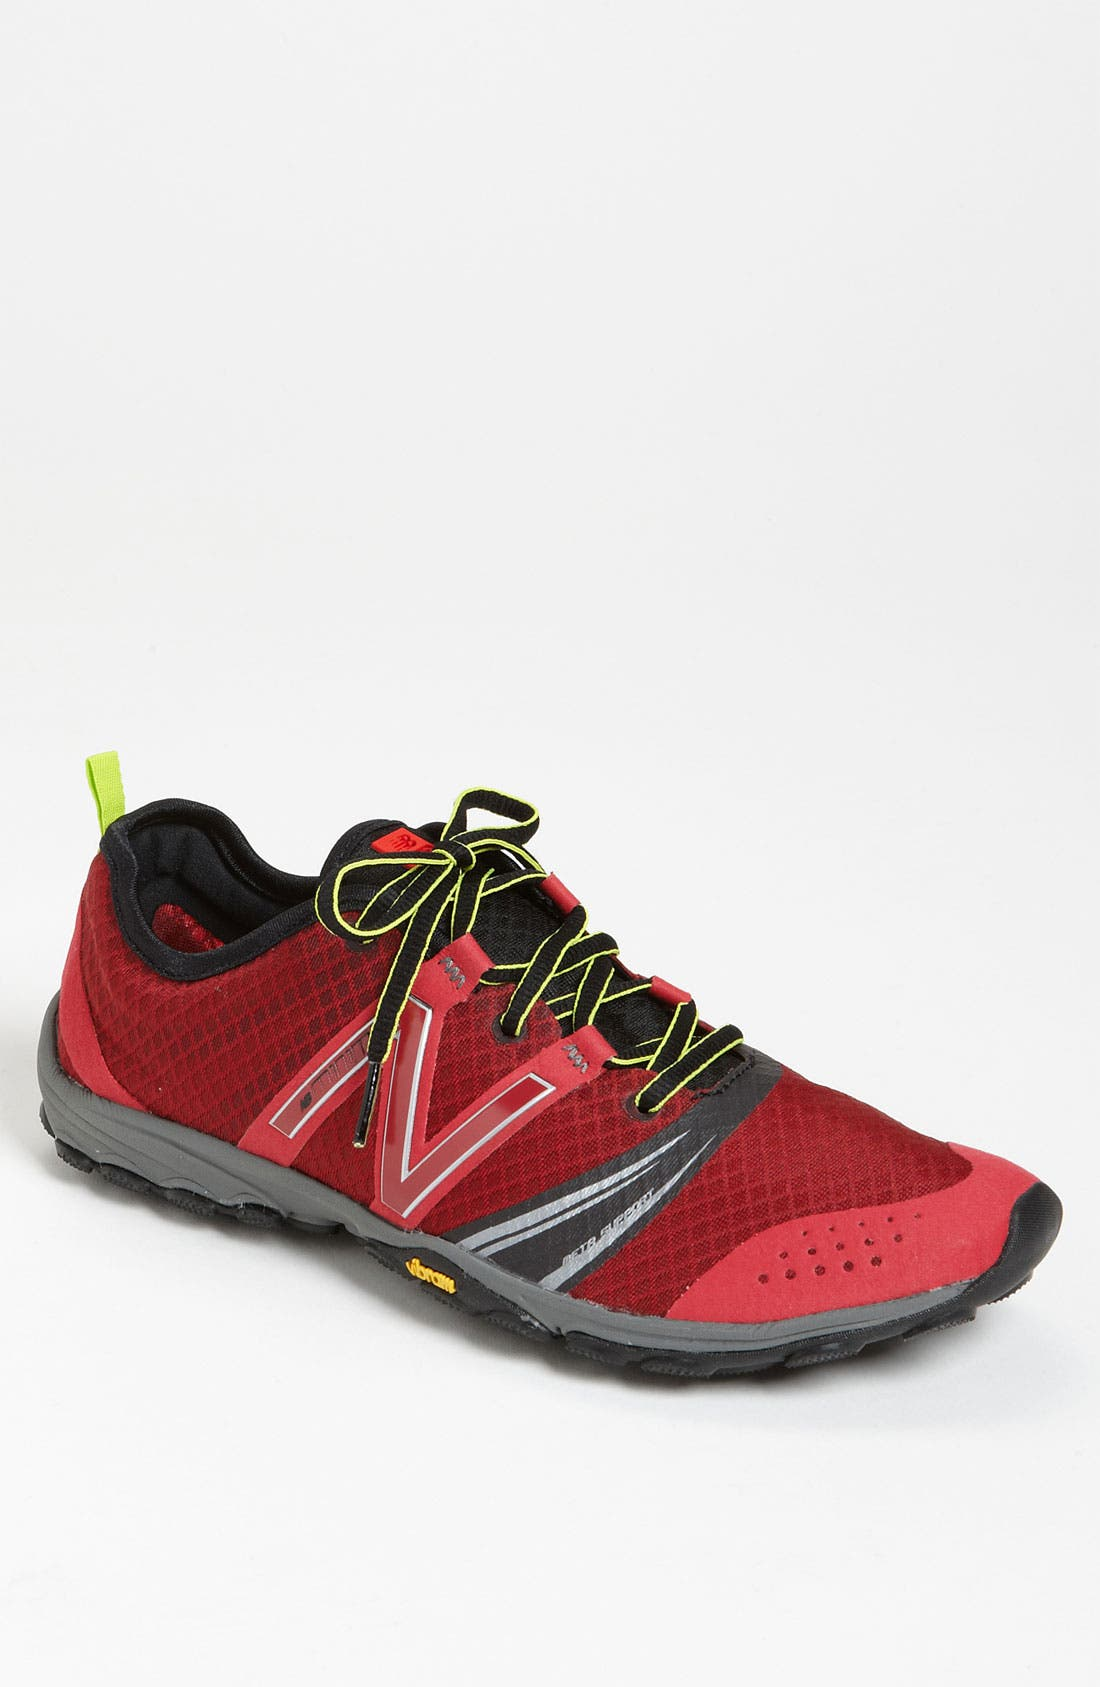 Main Image - New Balance 'Minimus' Trail Running Shoe (Men)